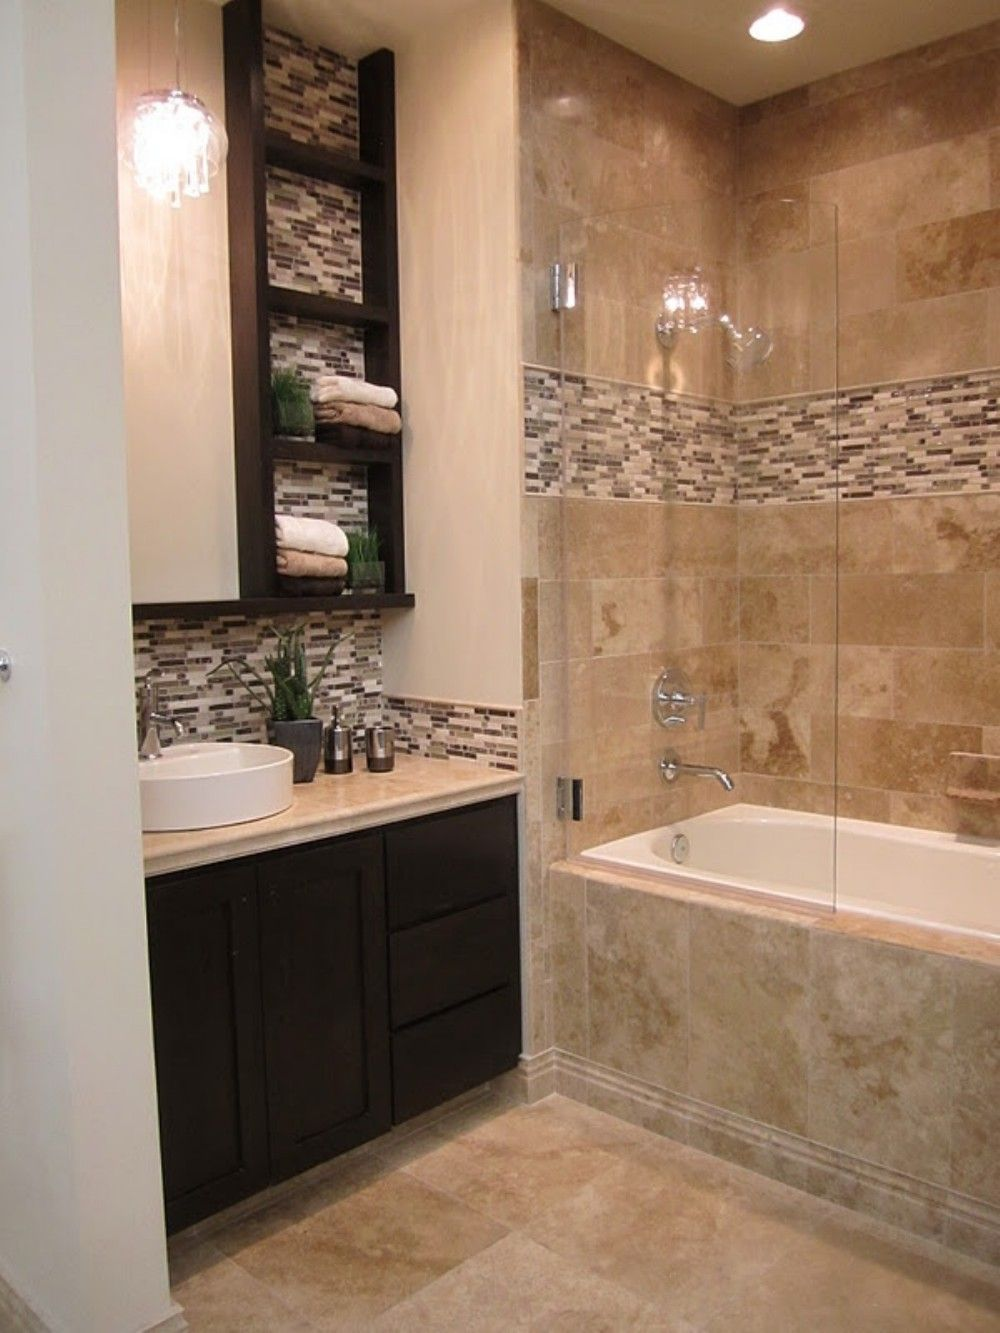 cool cozy small bathroom shower with tub tile design ideas https